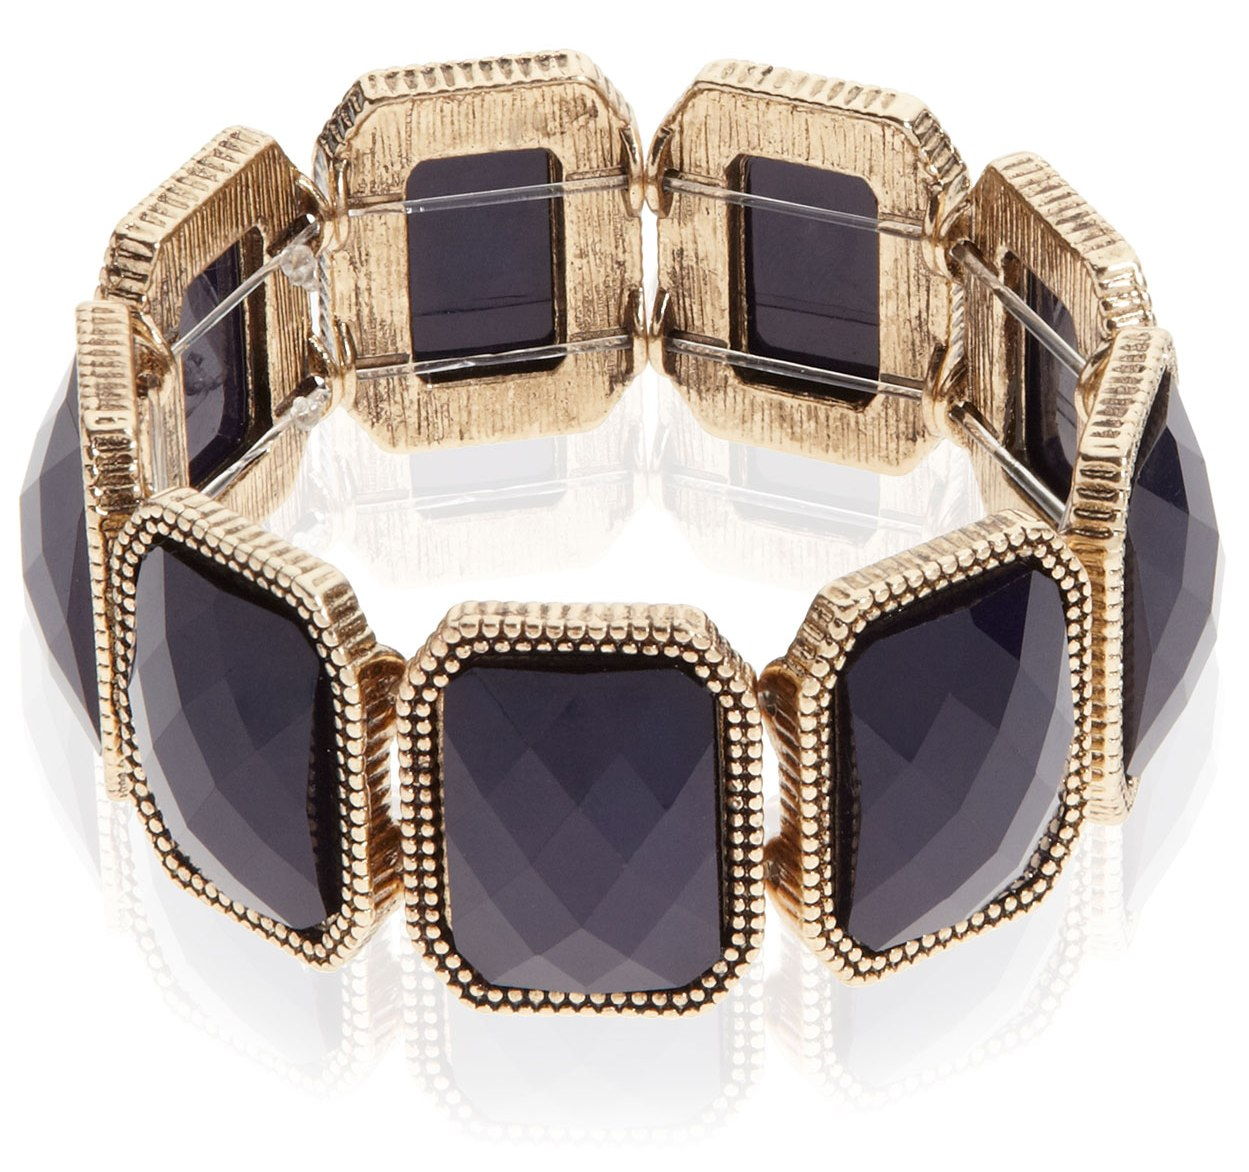 10-must-have-accessories-for-fallwinter-2013_31